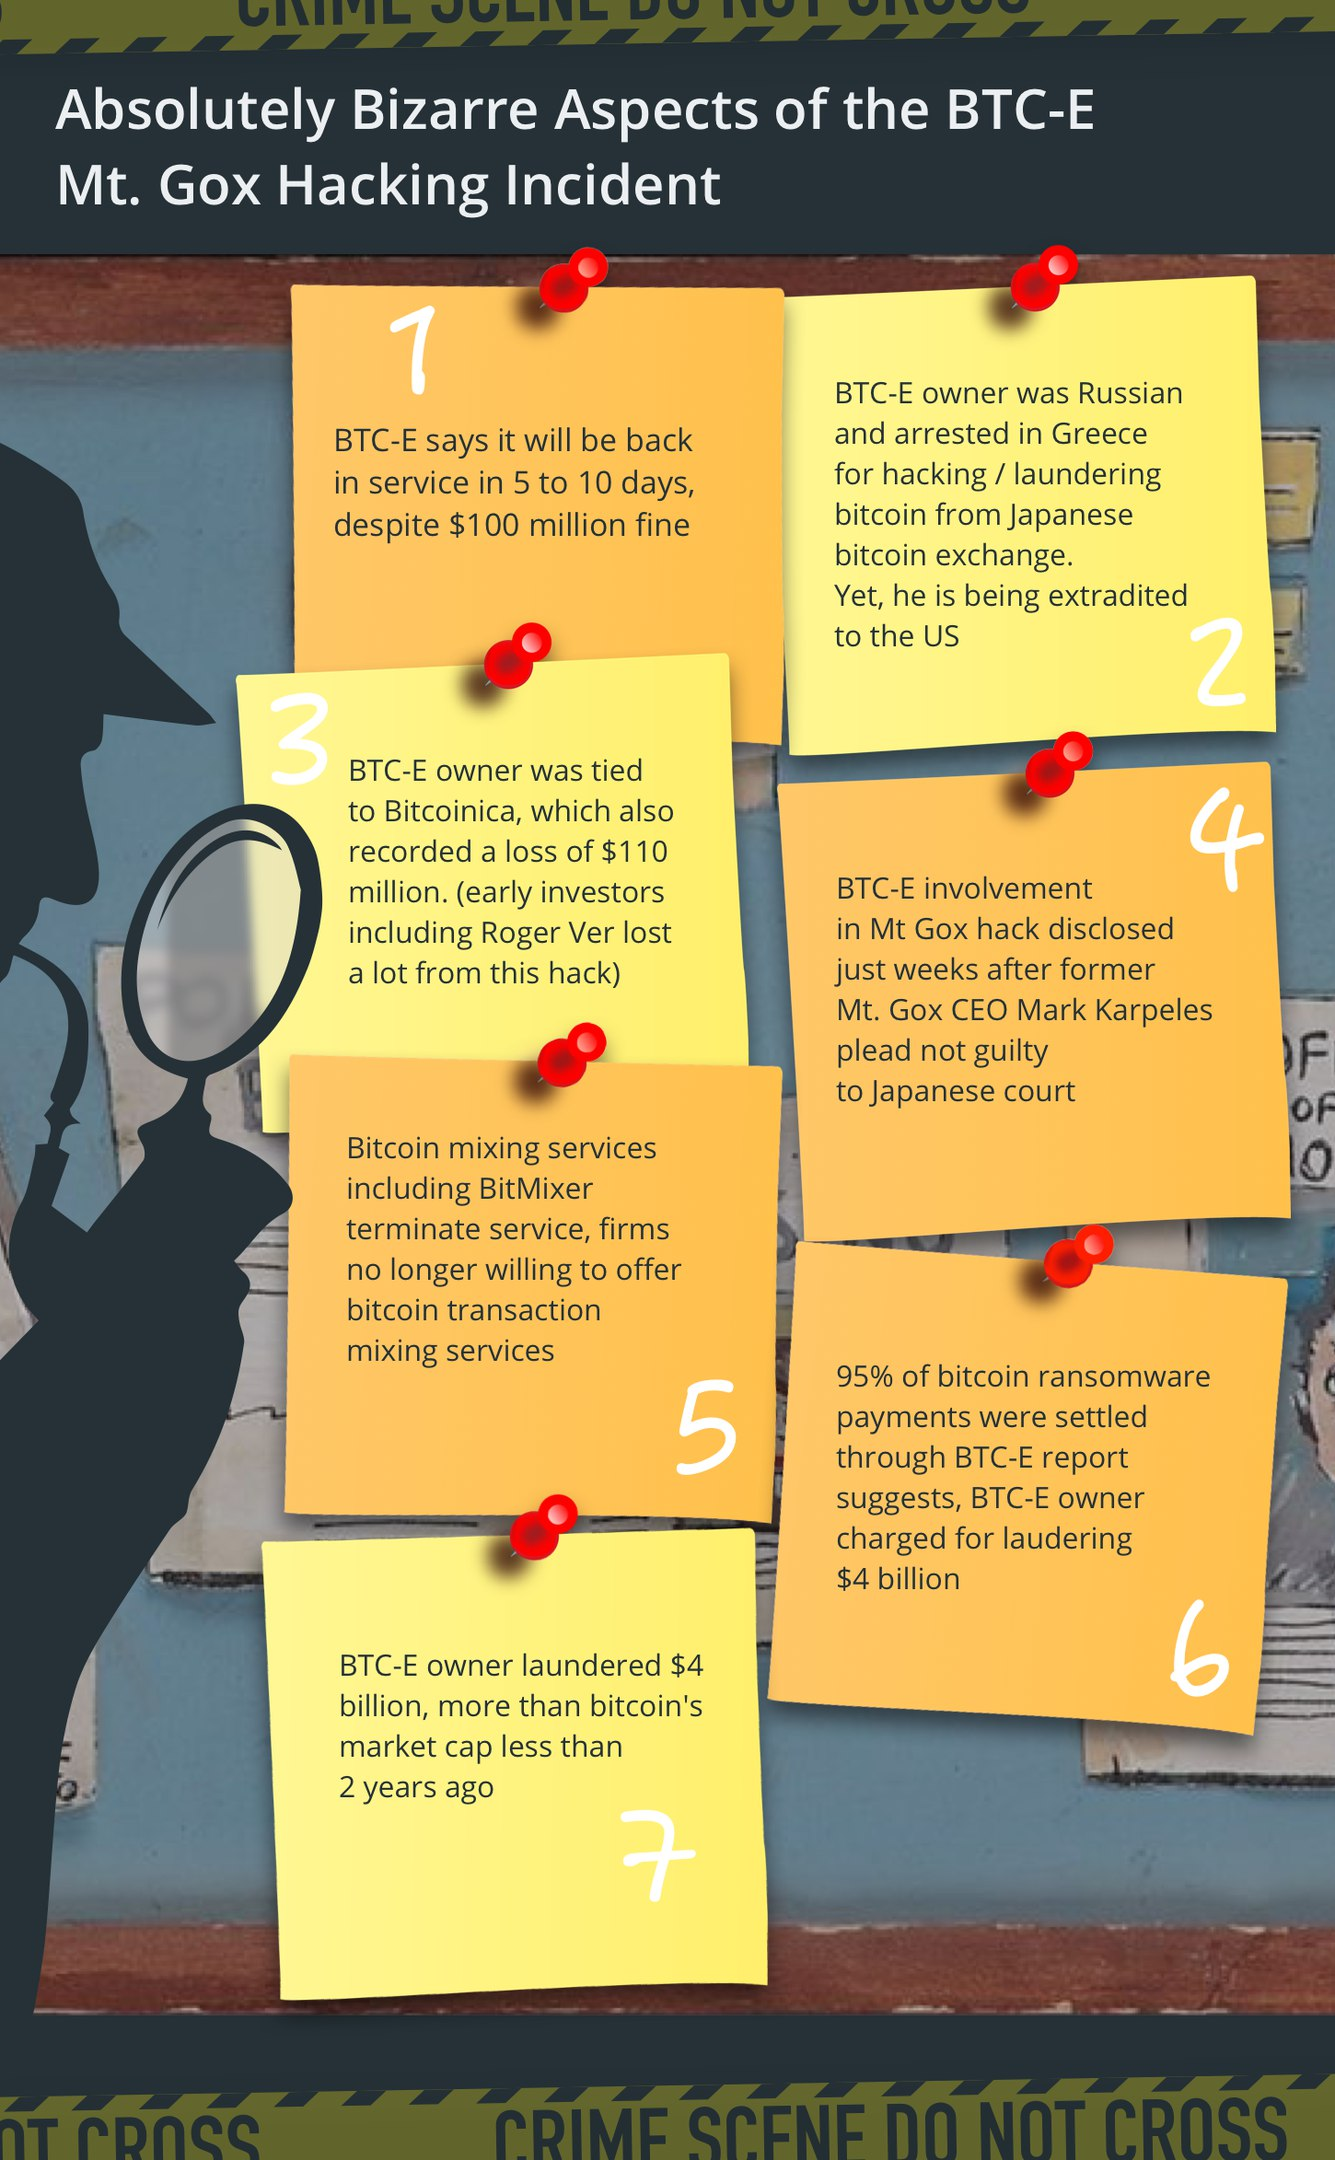 Absolutely Bizarre Aspects of the BTC-E Mt. Gox Hacking Incident